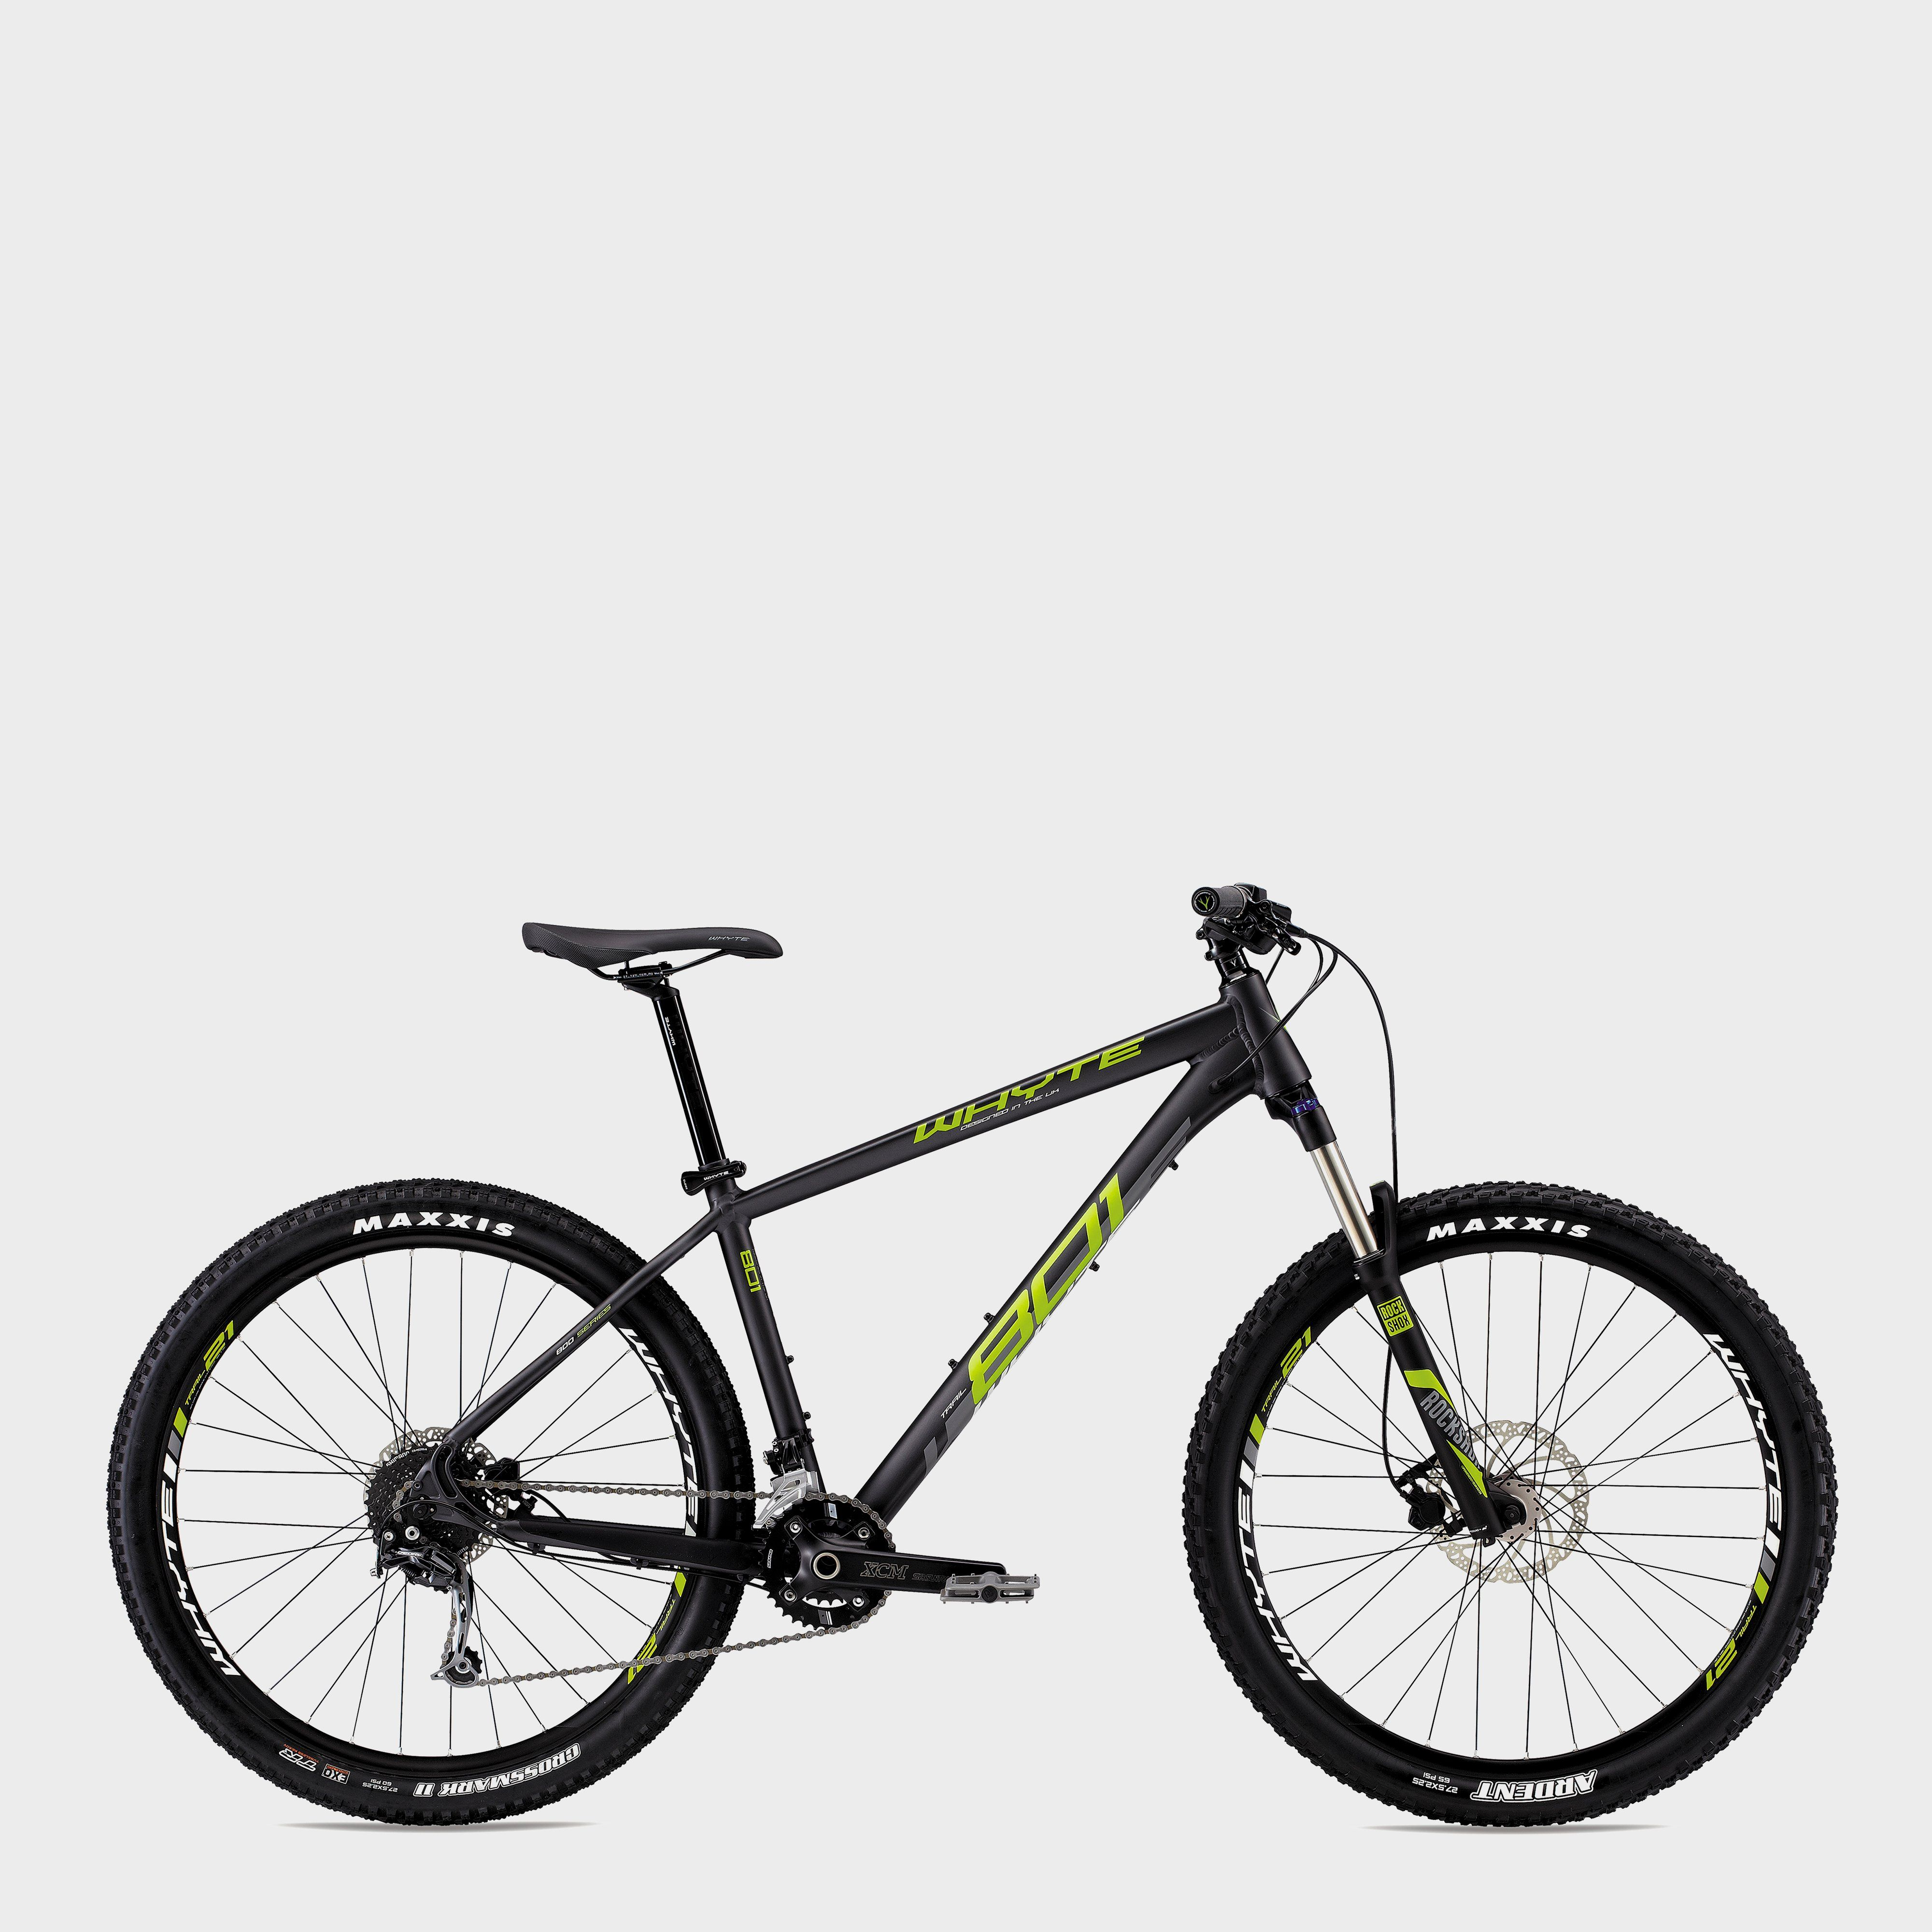 WHYTE BIKES 801 Hardtail Bike